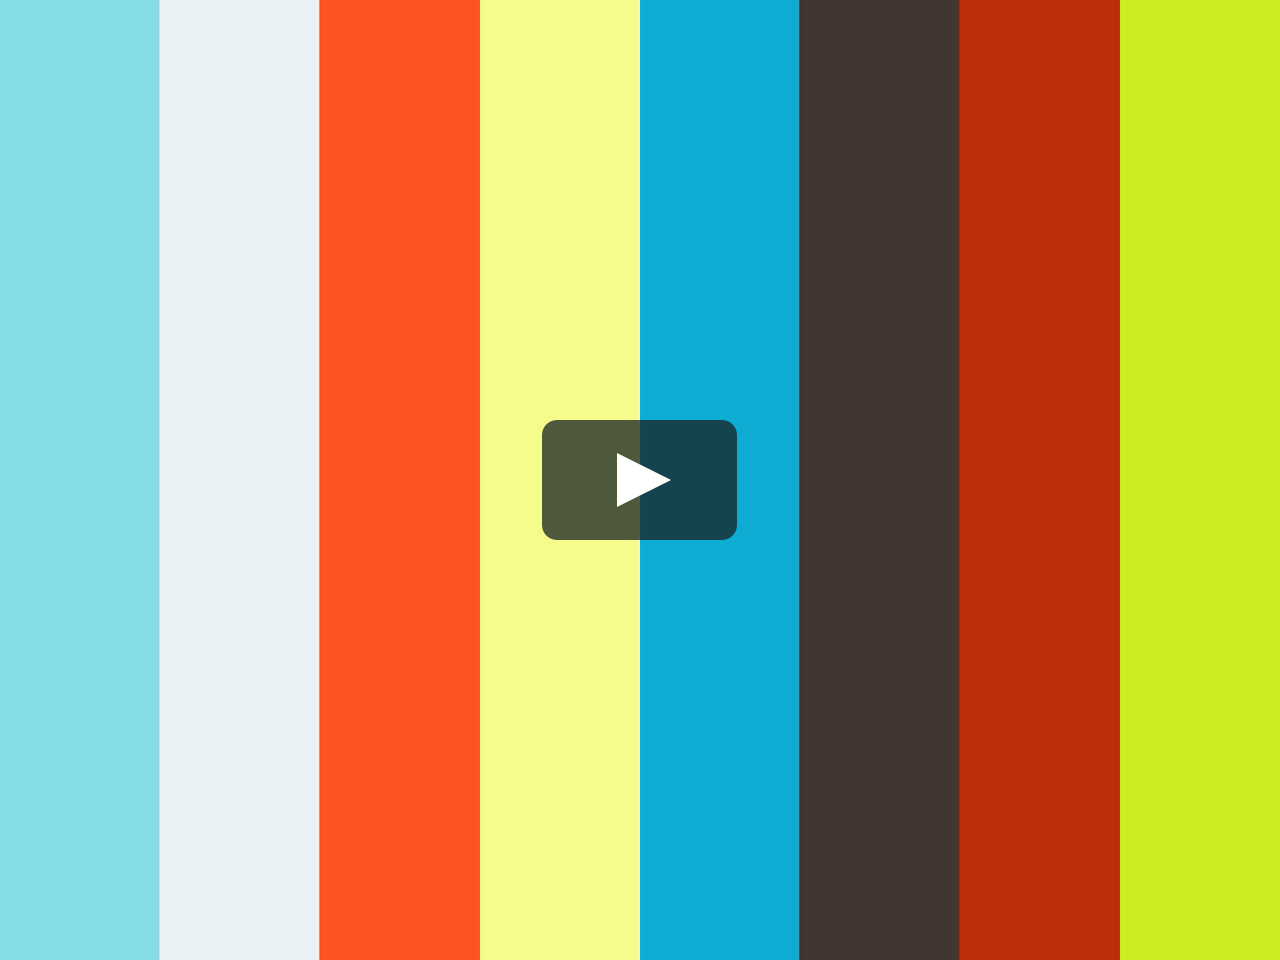 Video como instalar fibra piscinas cano c 61 on vimeo for Vidrio para piscinas